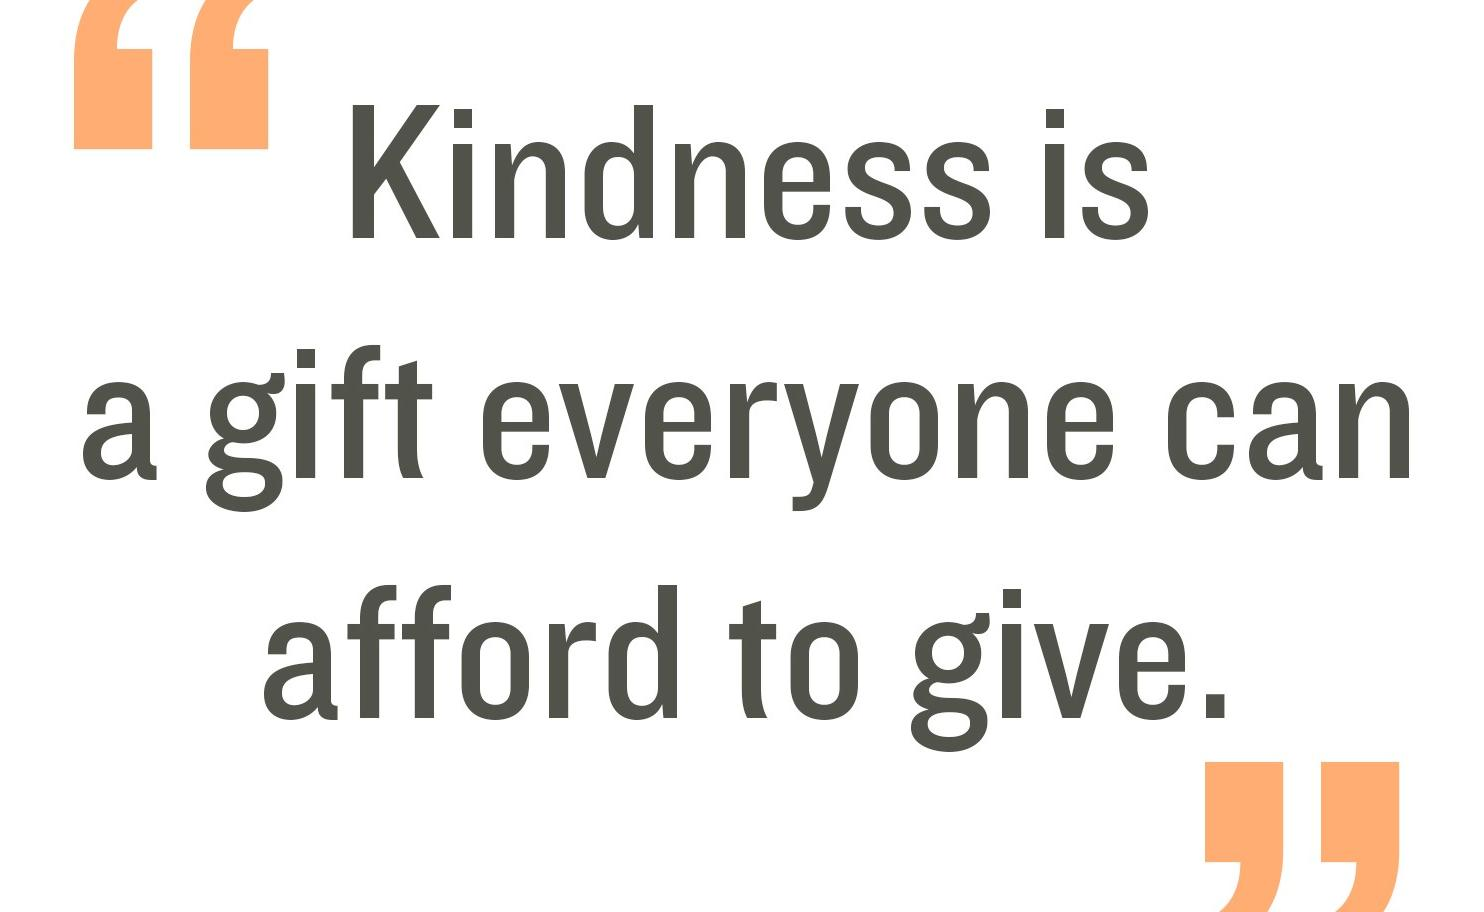 Random Acts of Kindness Week 18 – 22 Feb